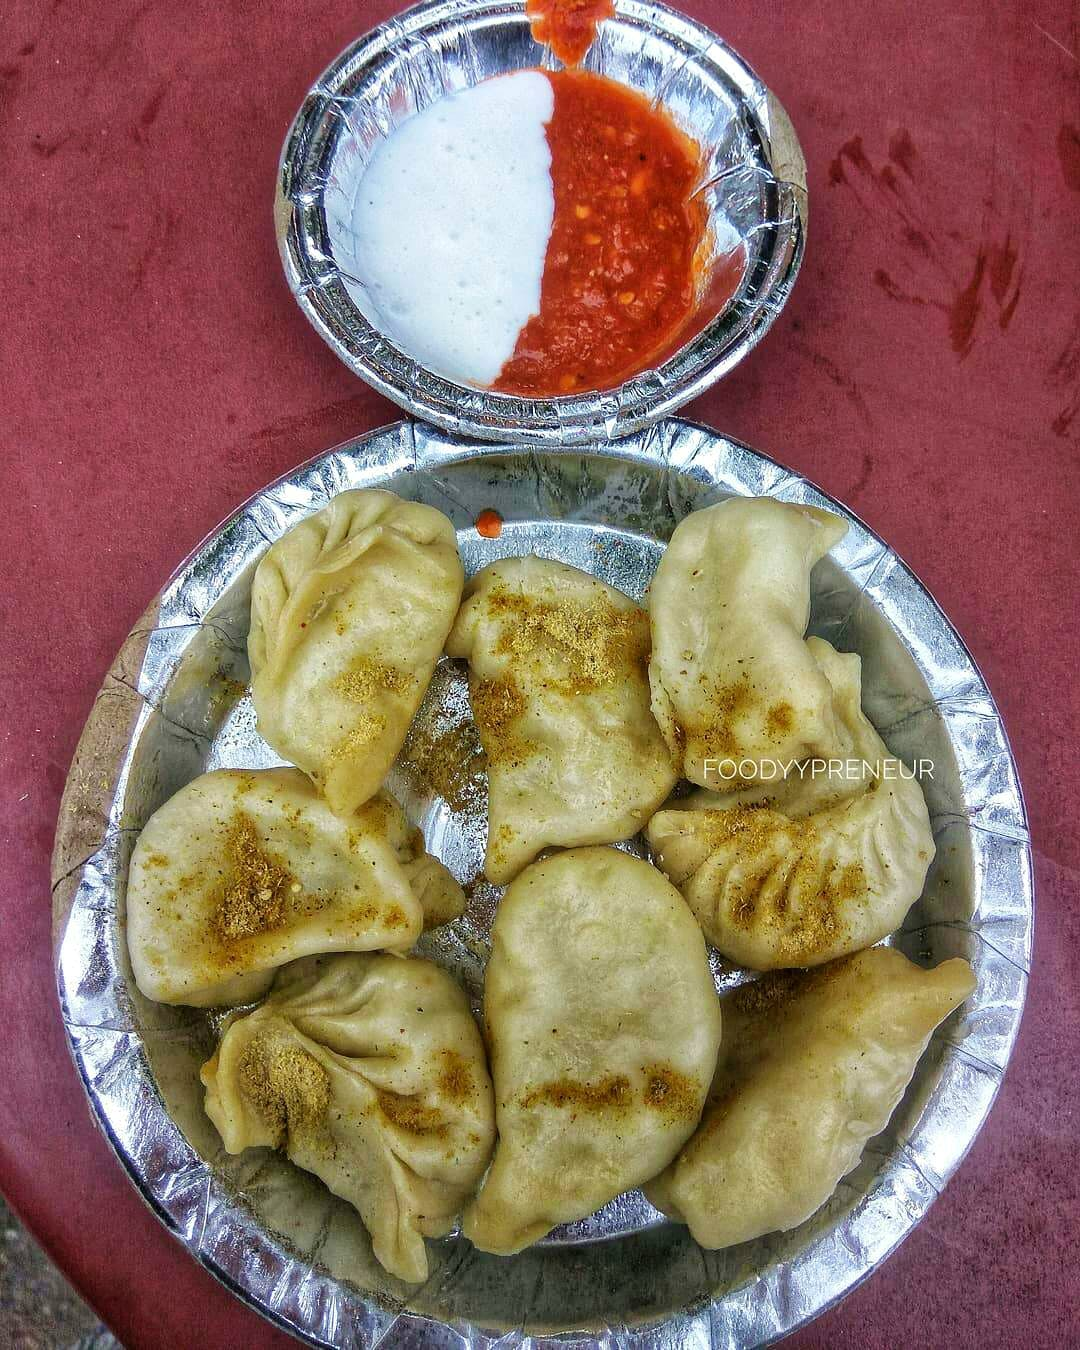 Dish,Food,Cuisine,Ingredient,Khuushuur,Produce,Varenyky,Mongolian food,Mandu,Pierogi